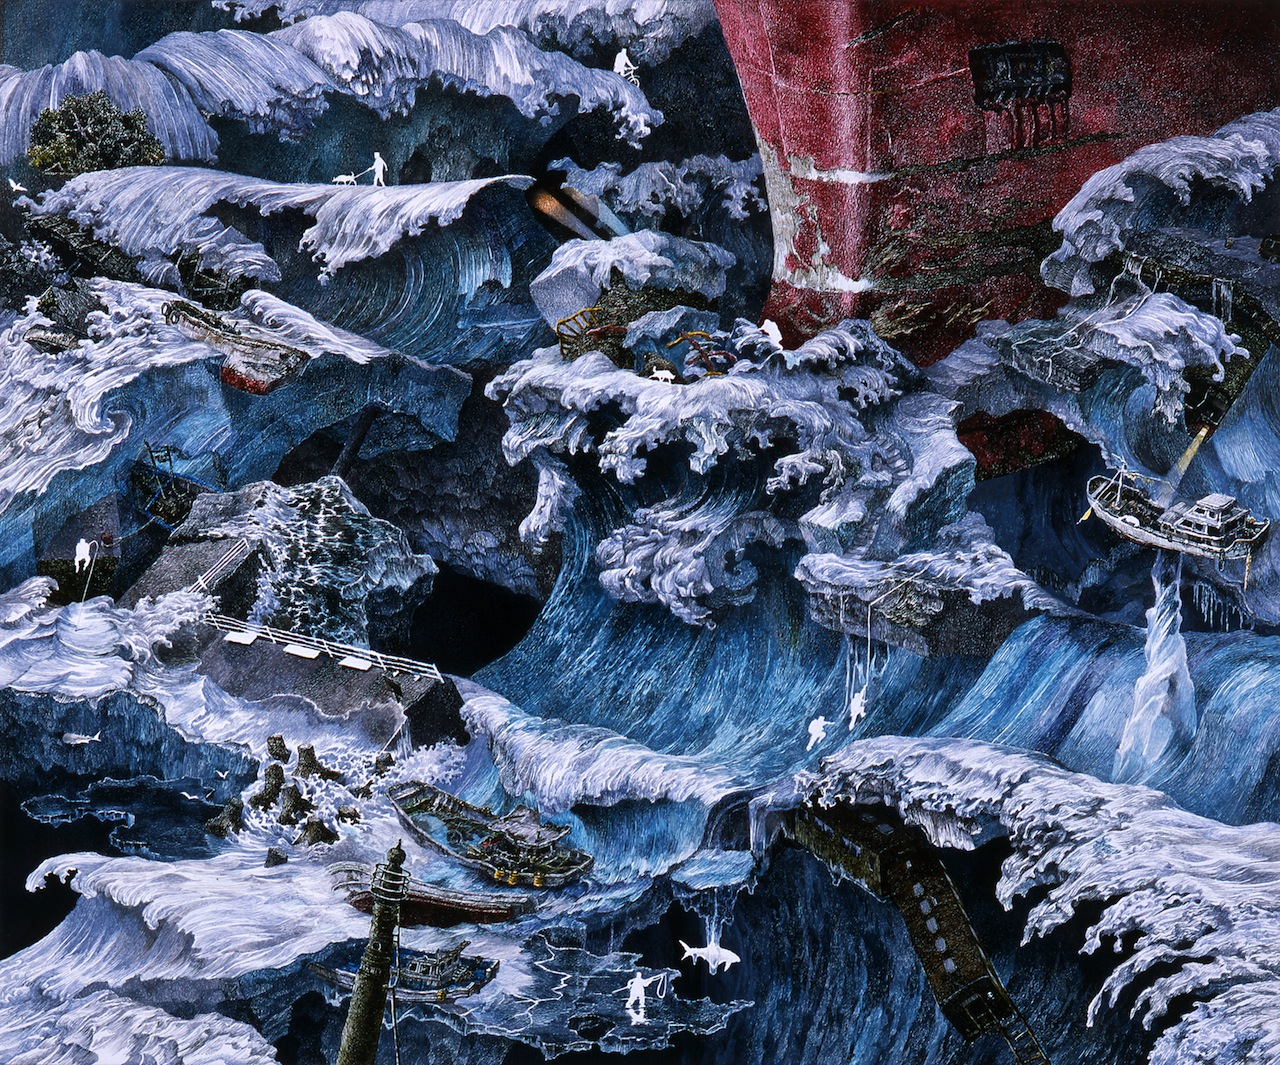 Manabu Ikeda, (b. 1973), Ice Stream (Episode from Foretoken), 2009. Pen, acrylic ink on paper, mounted on board; 13 4/5 x 17 5/7 in. Private Collection, New York. © Manabu Ikeda, courtesy Mizuma Art Gallery. Photo by Kei Miyajima.